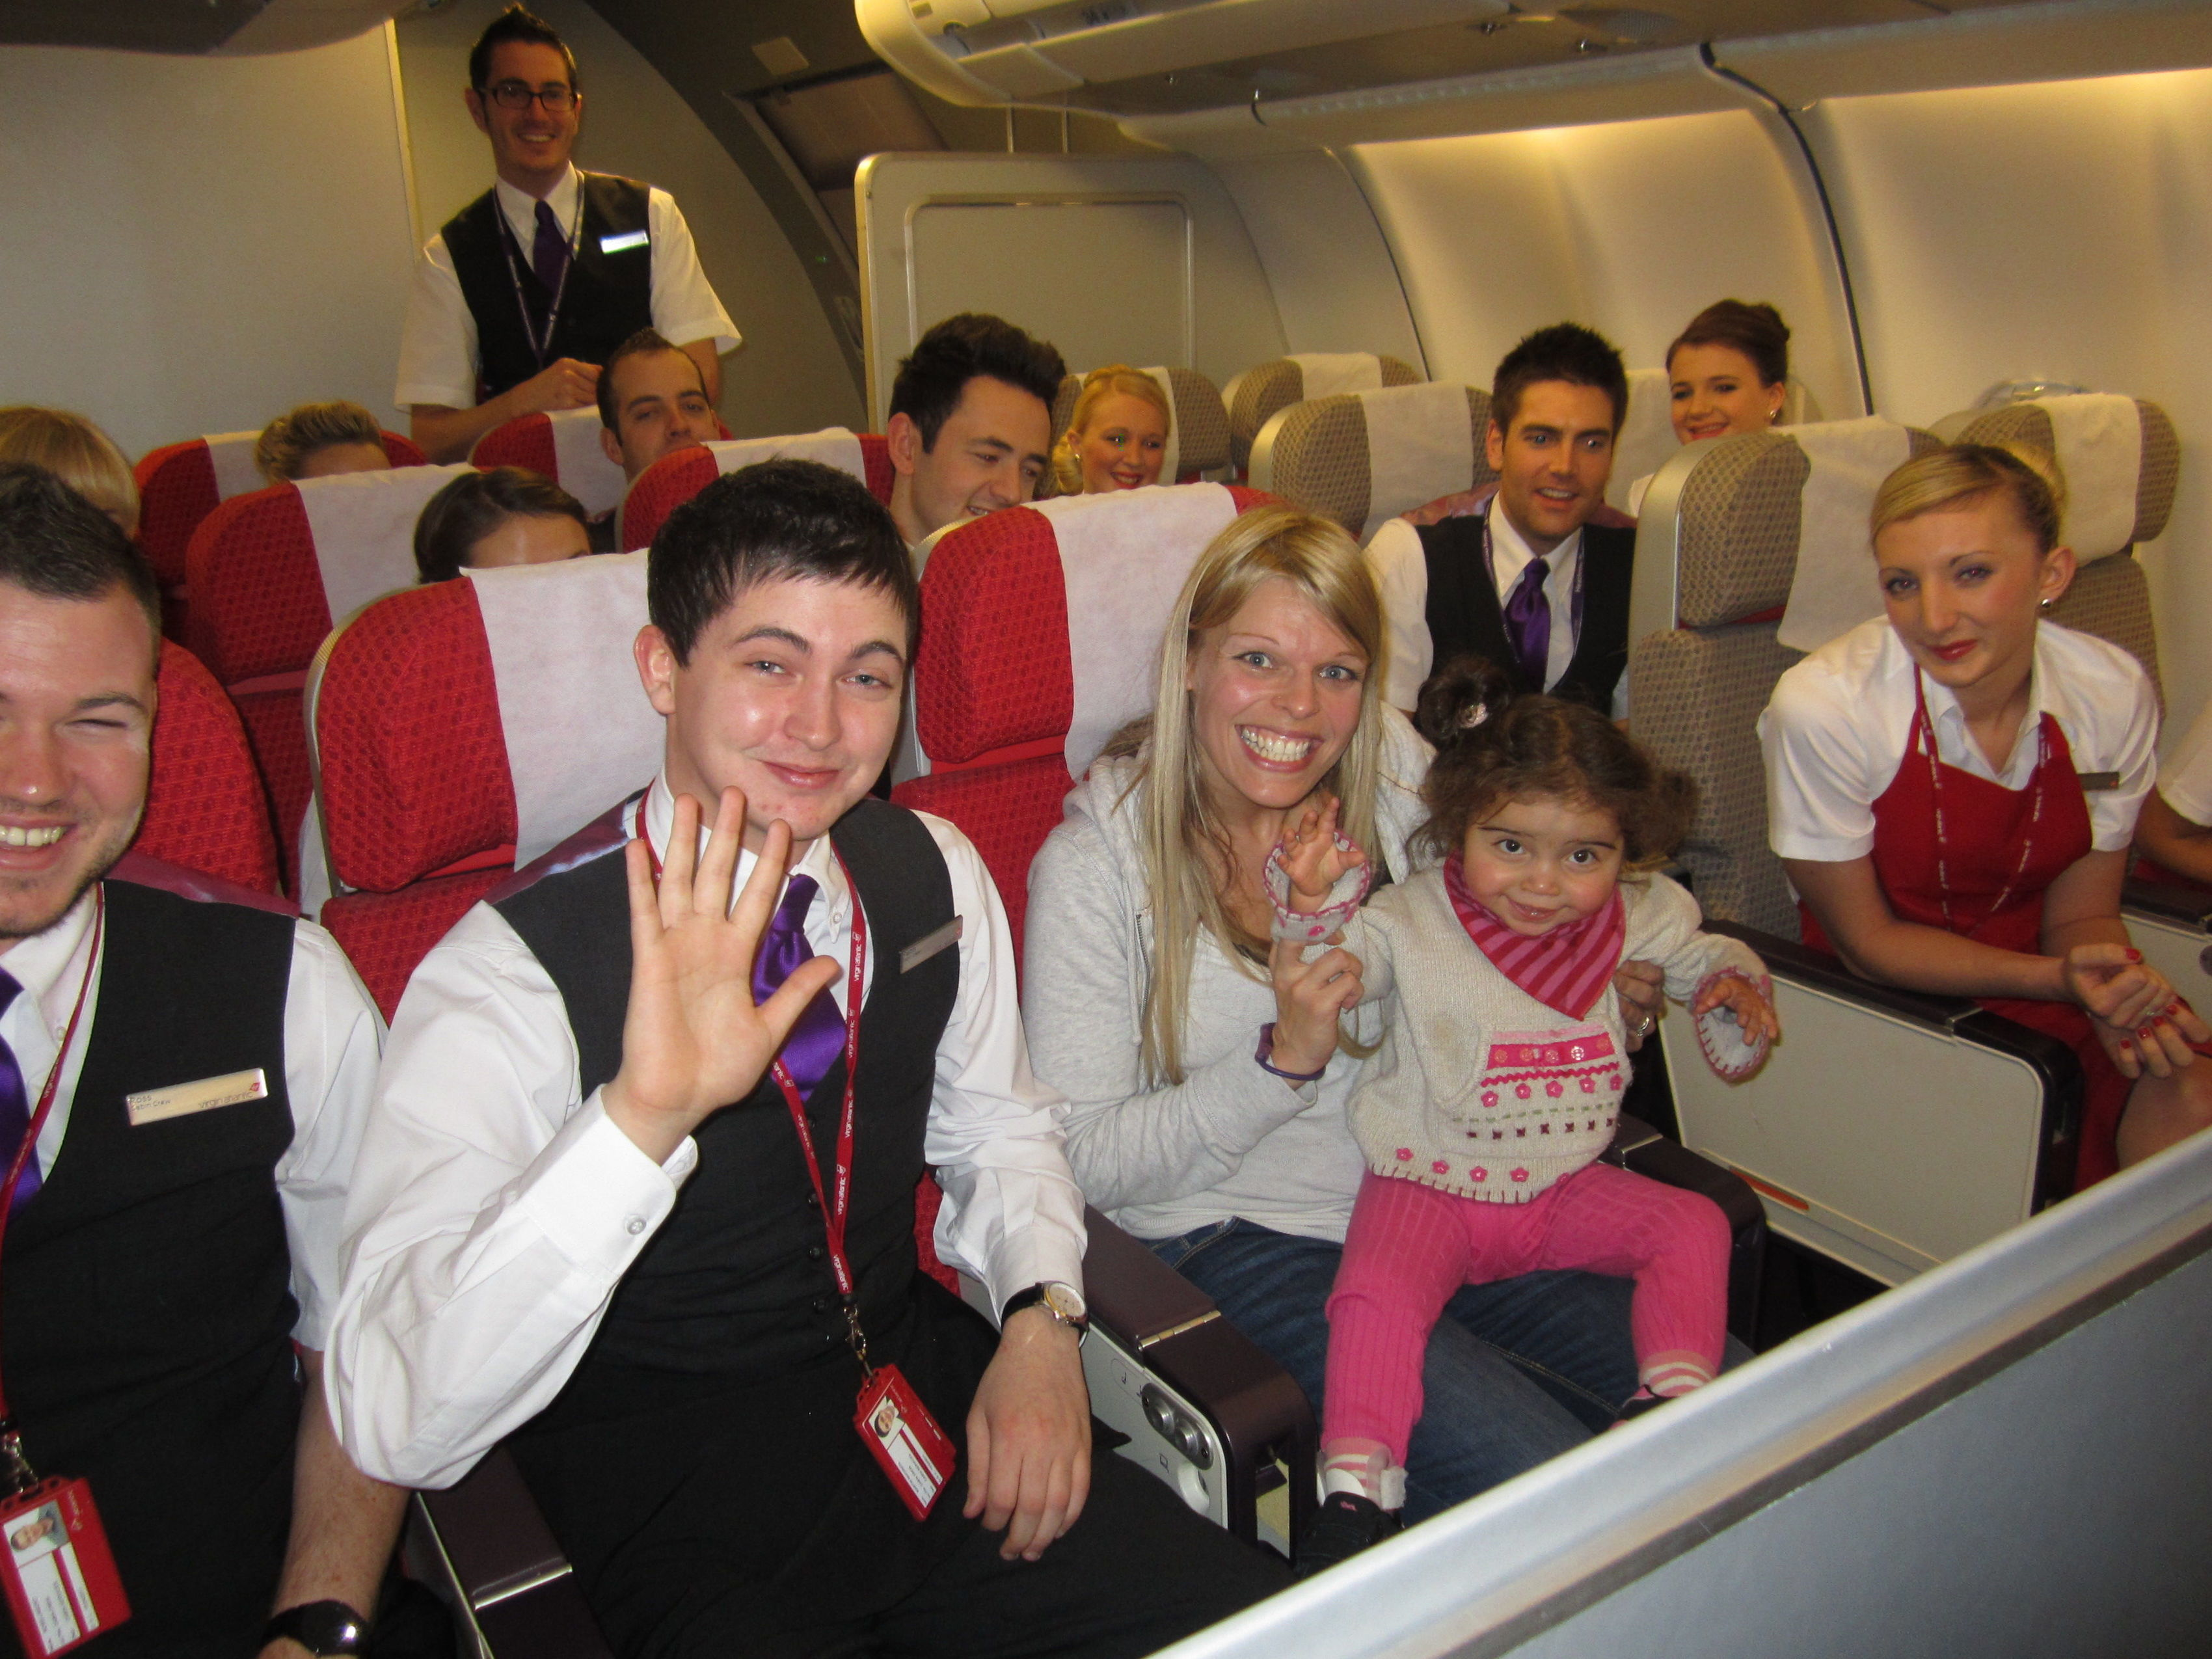 virgin atlantic customer services Contact virgin atlantic airlines: find below customer service details of virgin atlantic airlines, including telephone and address you can reach the below contact for new flight booking, cancellation, refund, baggage claim, cheap airfares, deals or other queries on virgin atlantic.